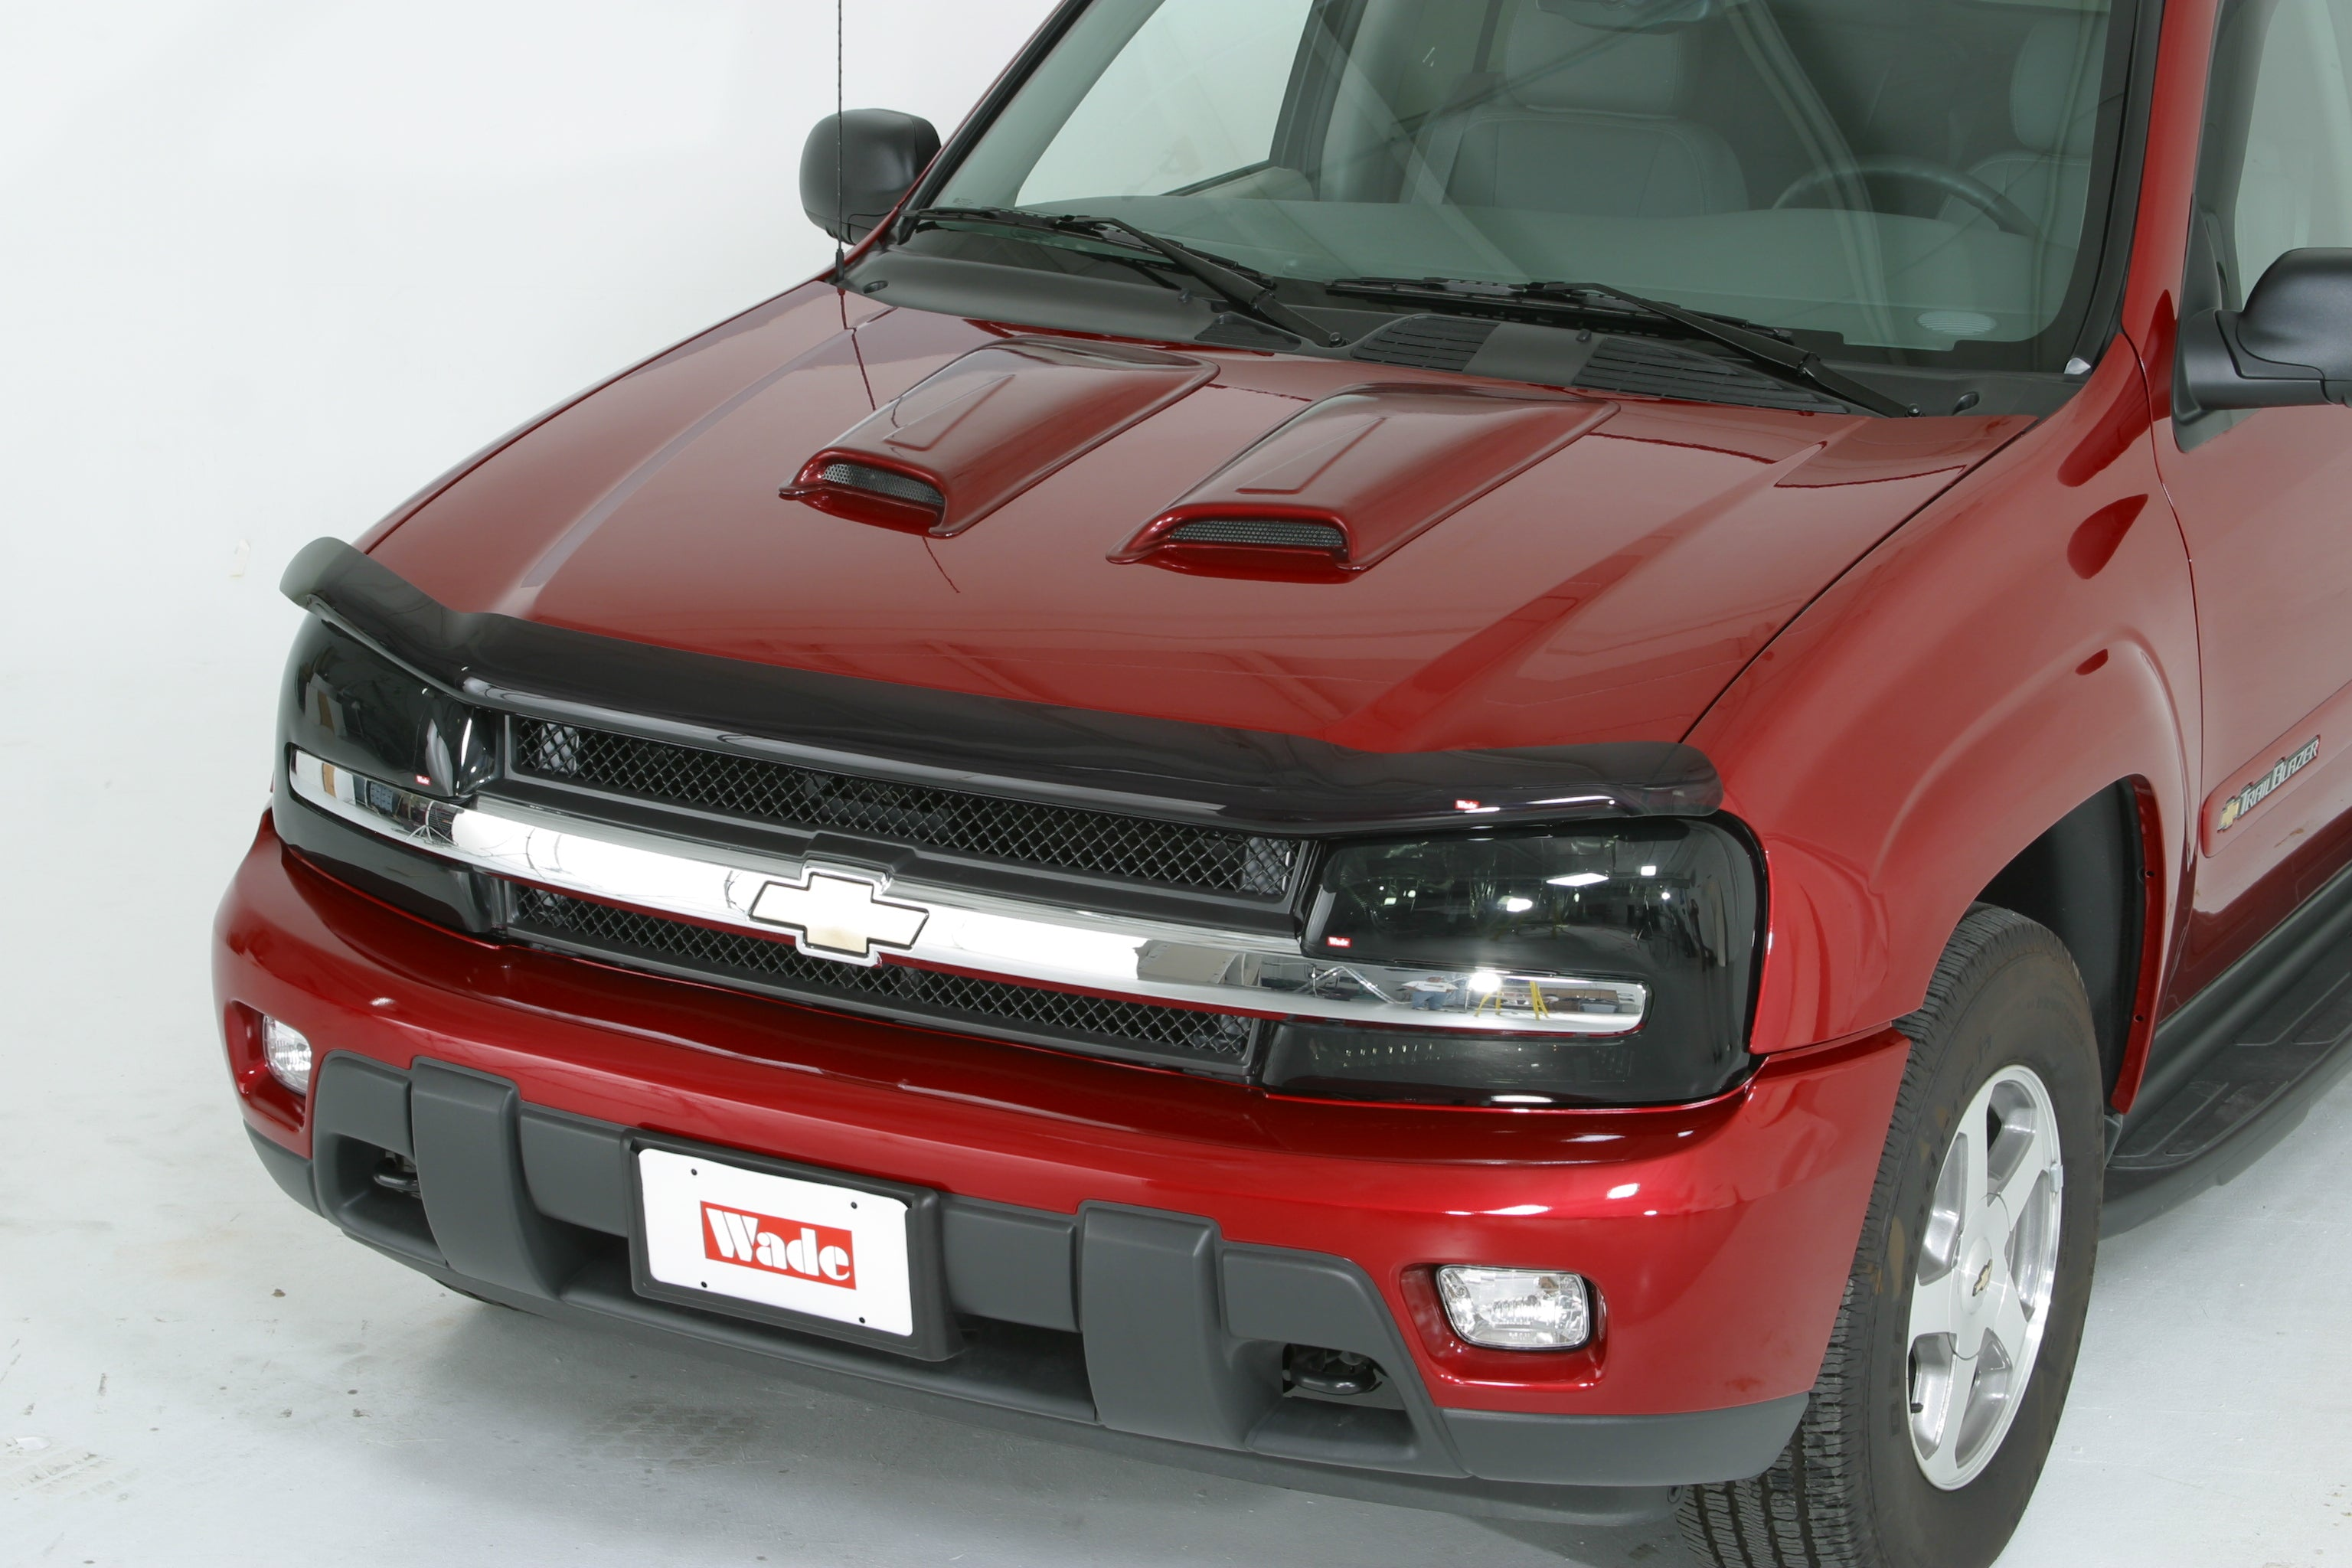 1993 Nissan Pickup 4WD (flush mount) Head Light Covers